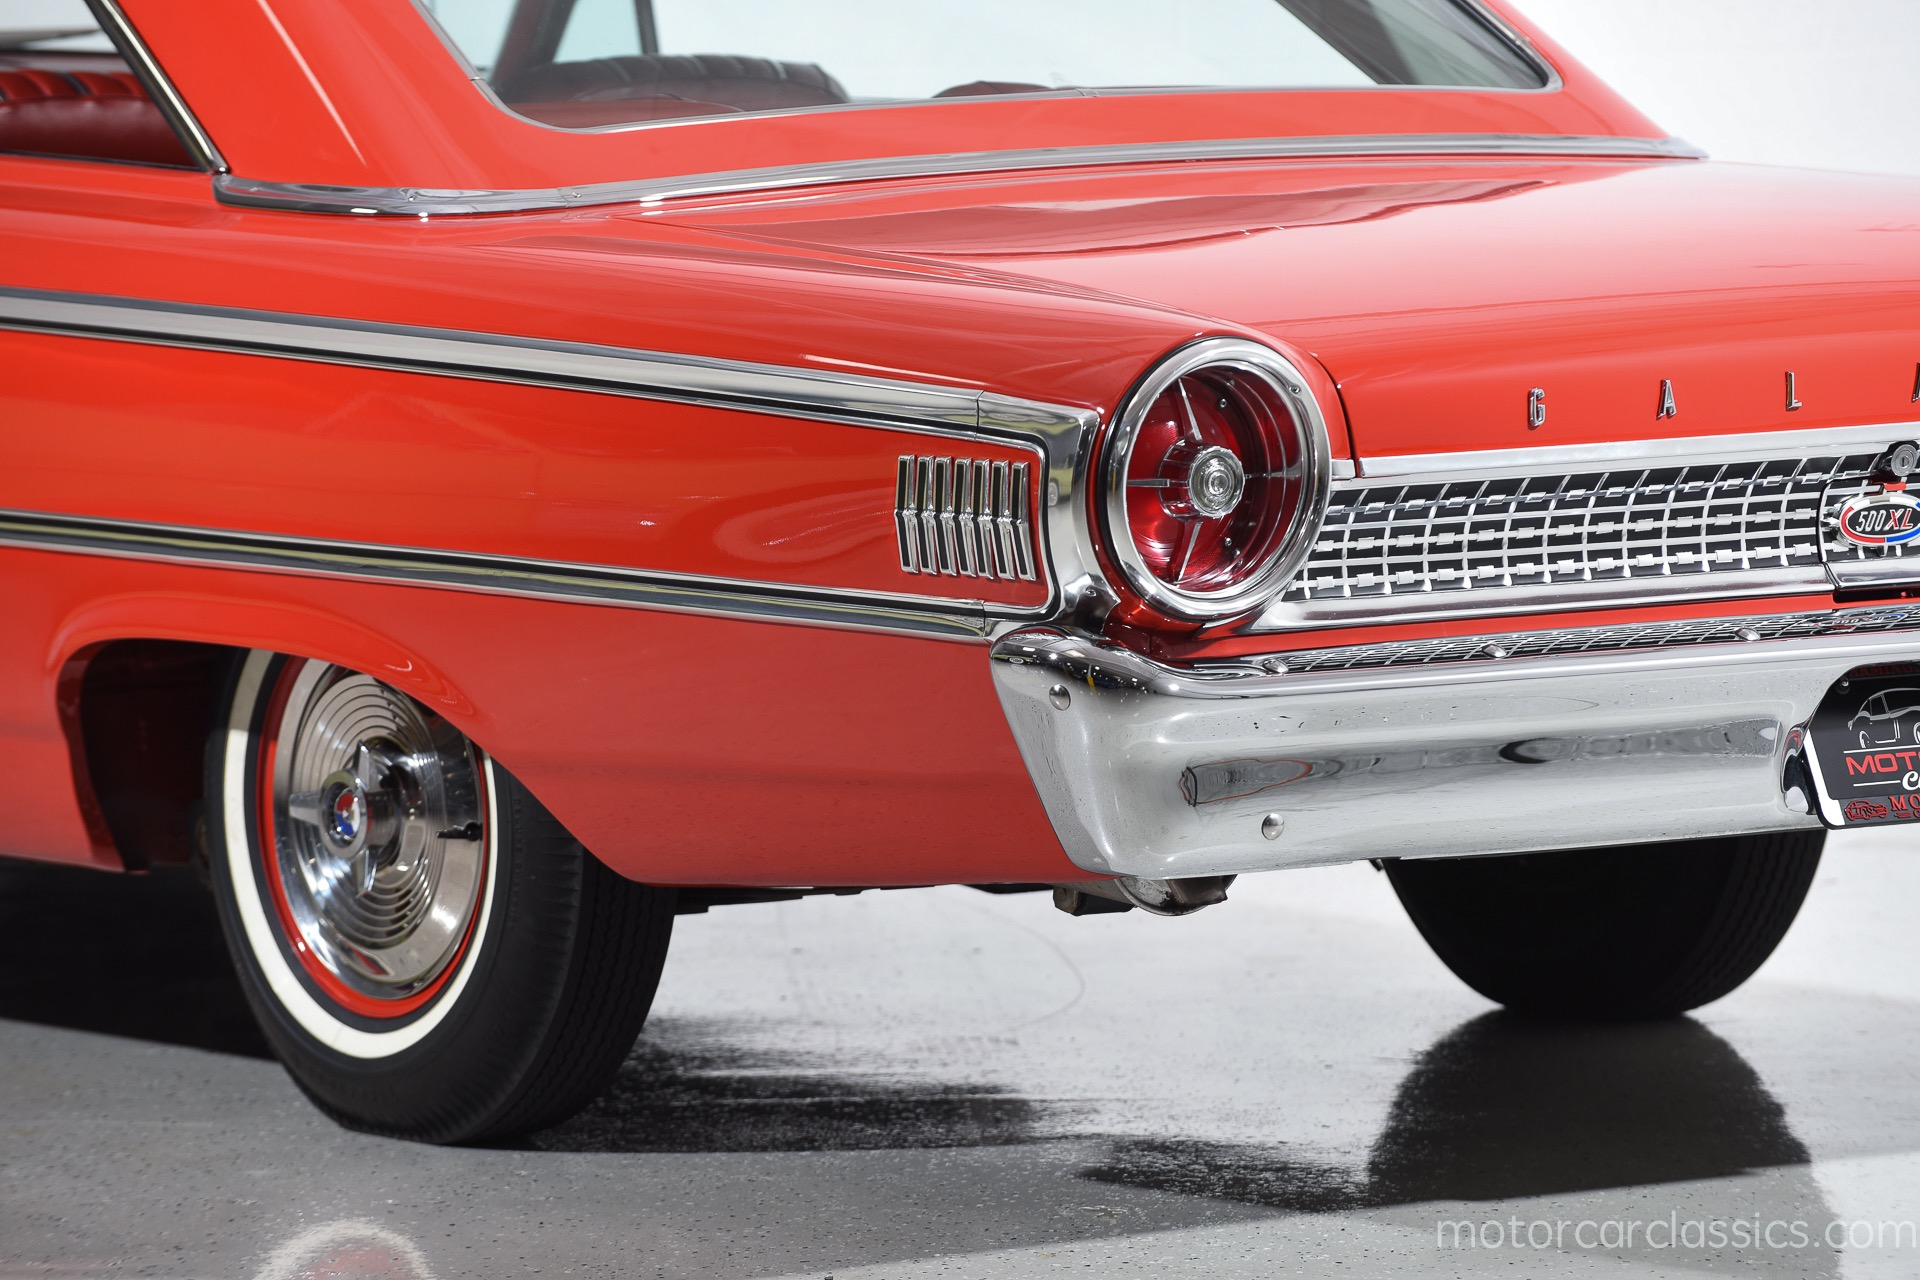 Used 1963 Ford Galaxie 500XL 427 R CODE For Sale ($89,900